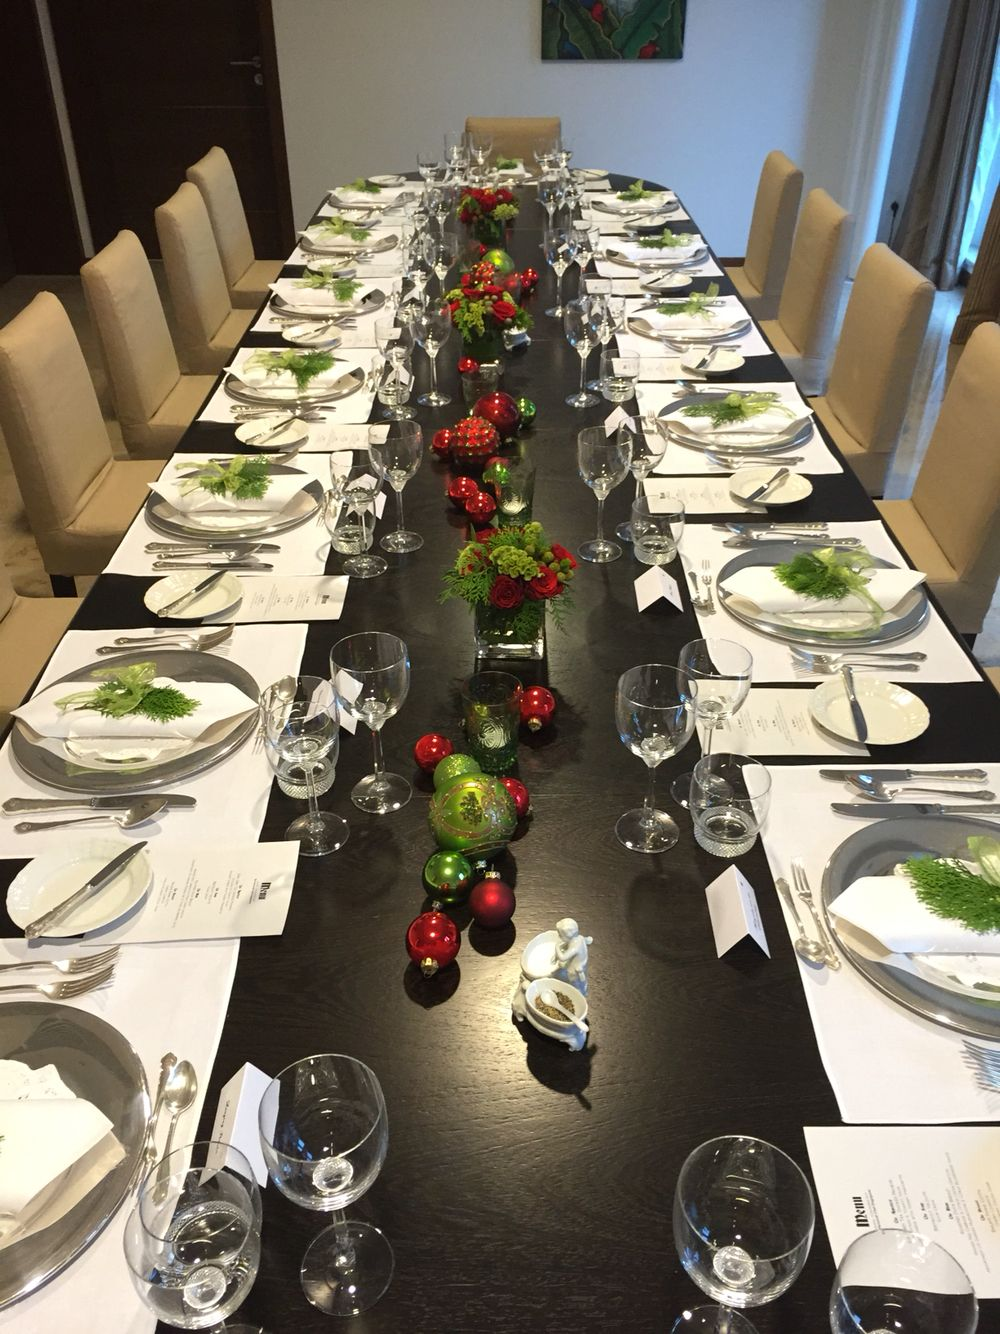 Fine Dining Setup For Christmas Dining Table Decor Fine Dining Table Decorations